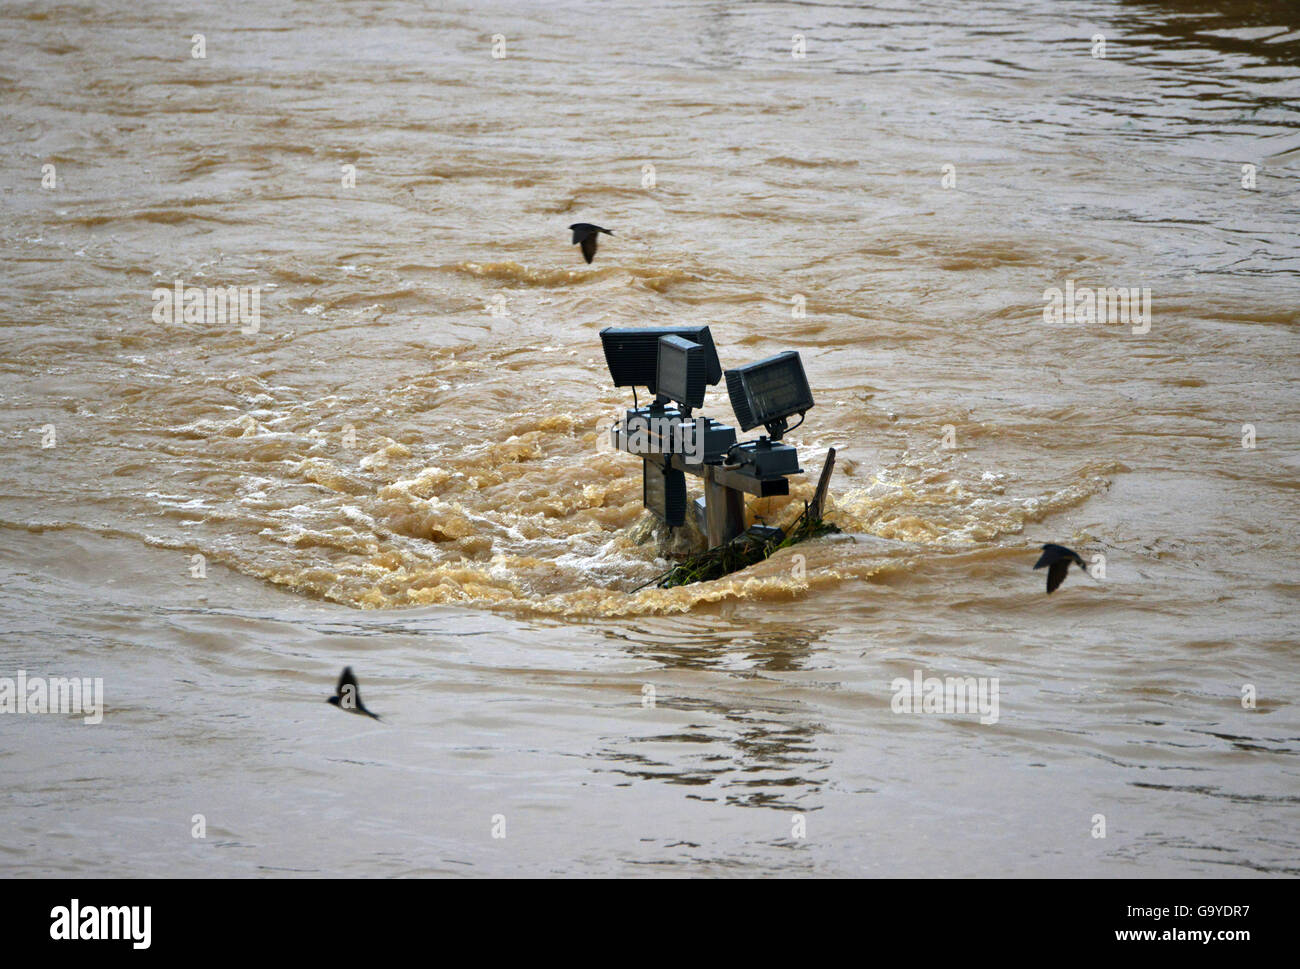 Anhui, China. 02nd July, 2016. The bank of Laopi River is submerged in Lu'an City, east China's Anhui Province, - Stock Image